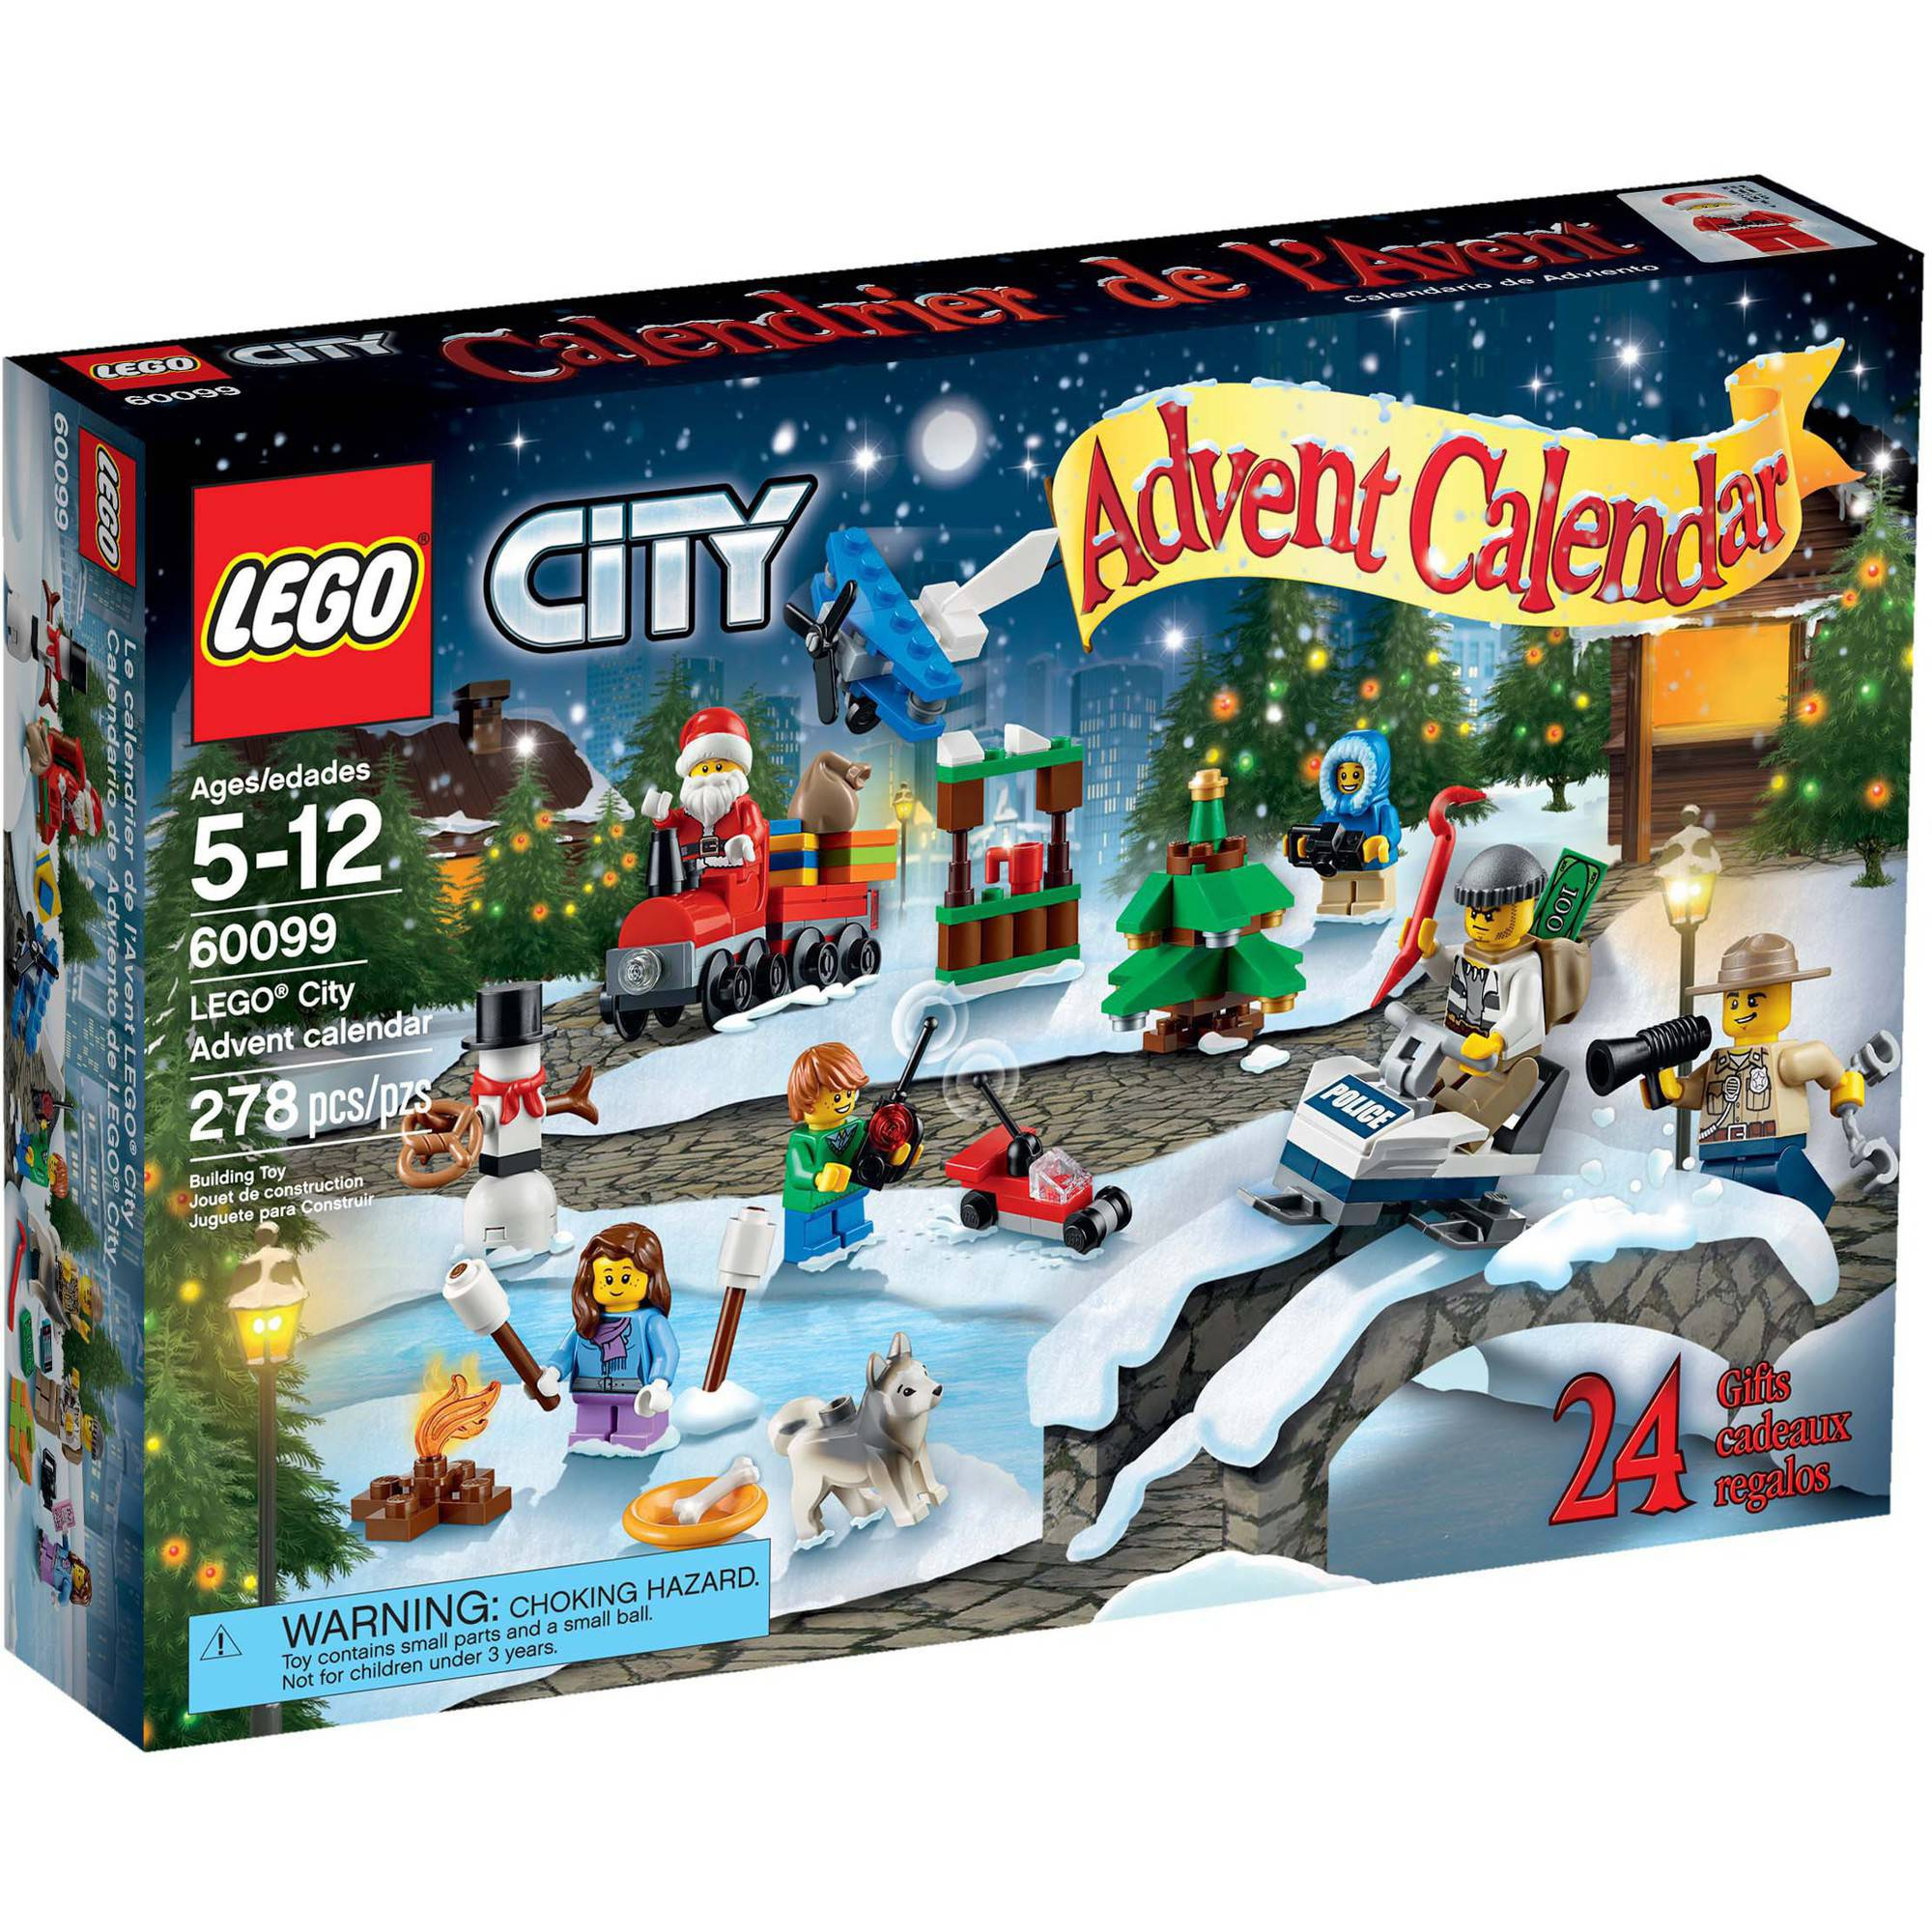 LEGO City Advent Calendar, 60099